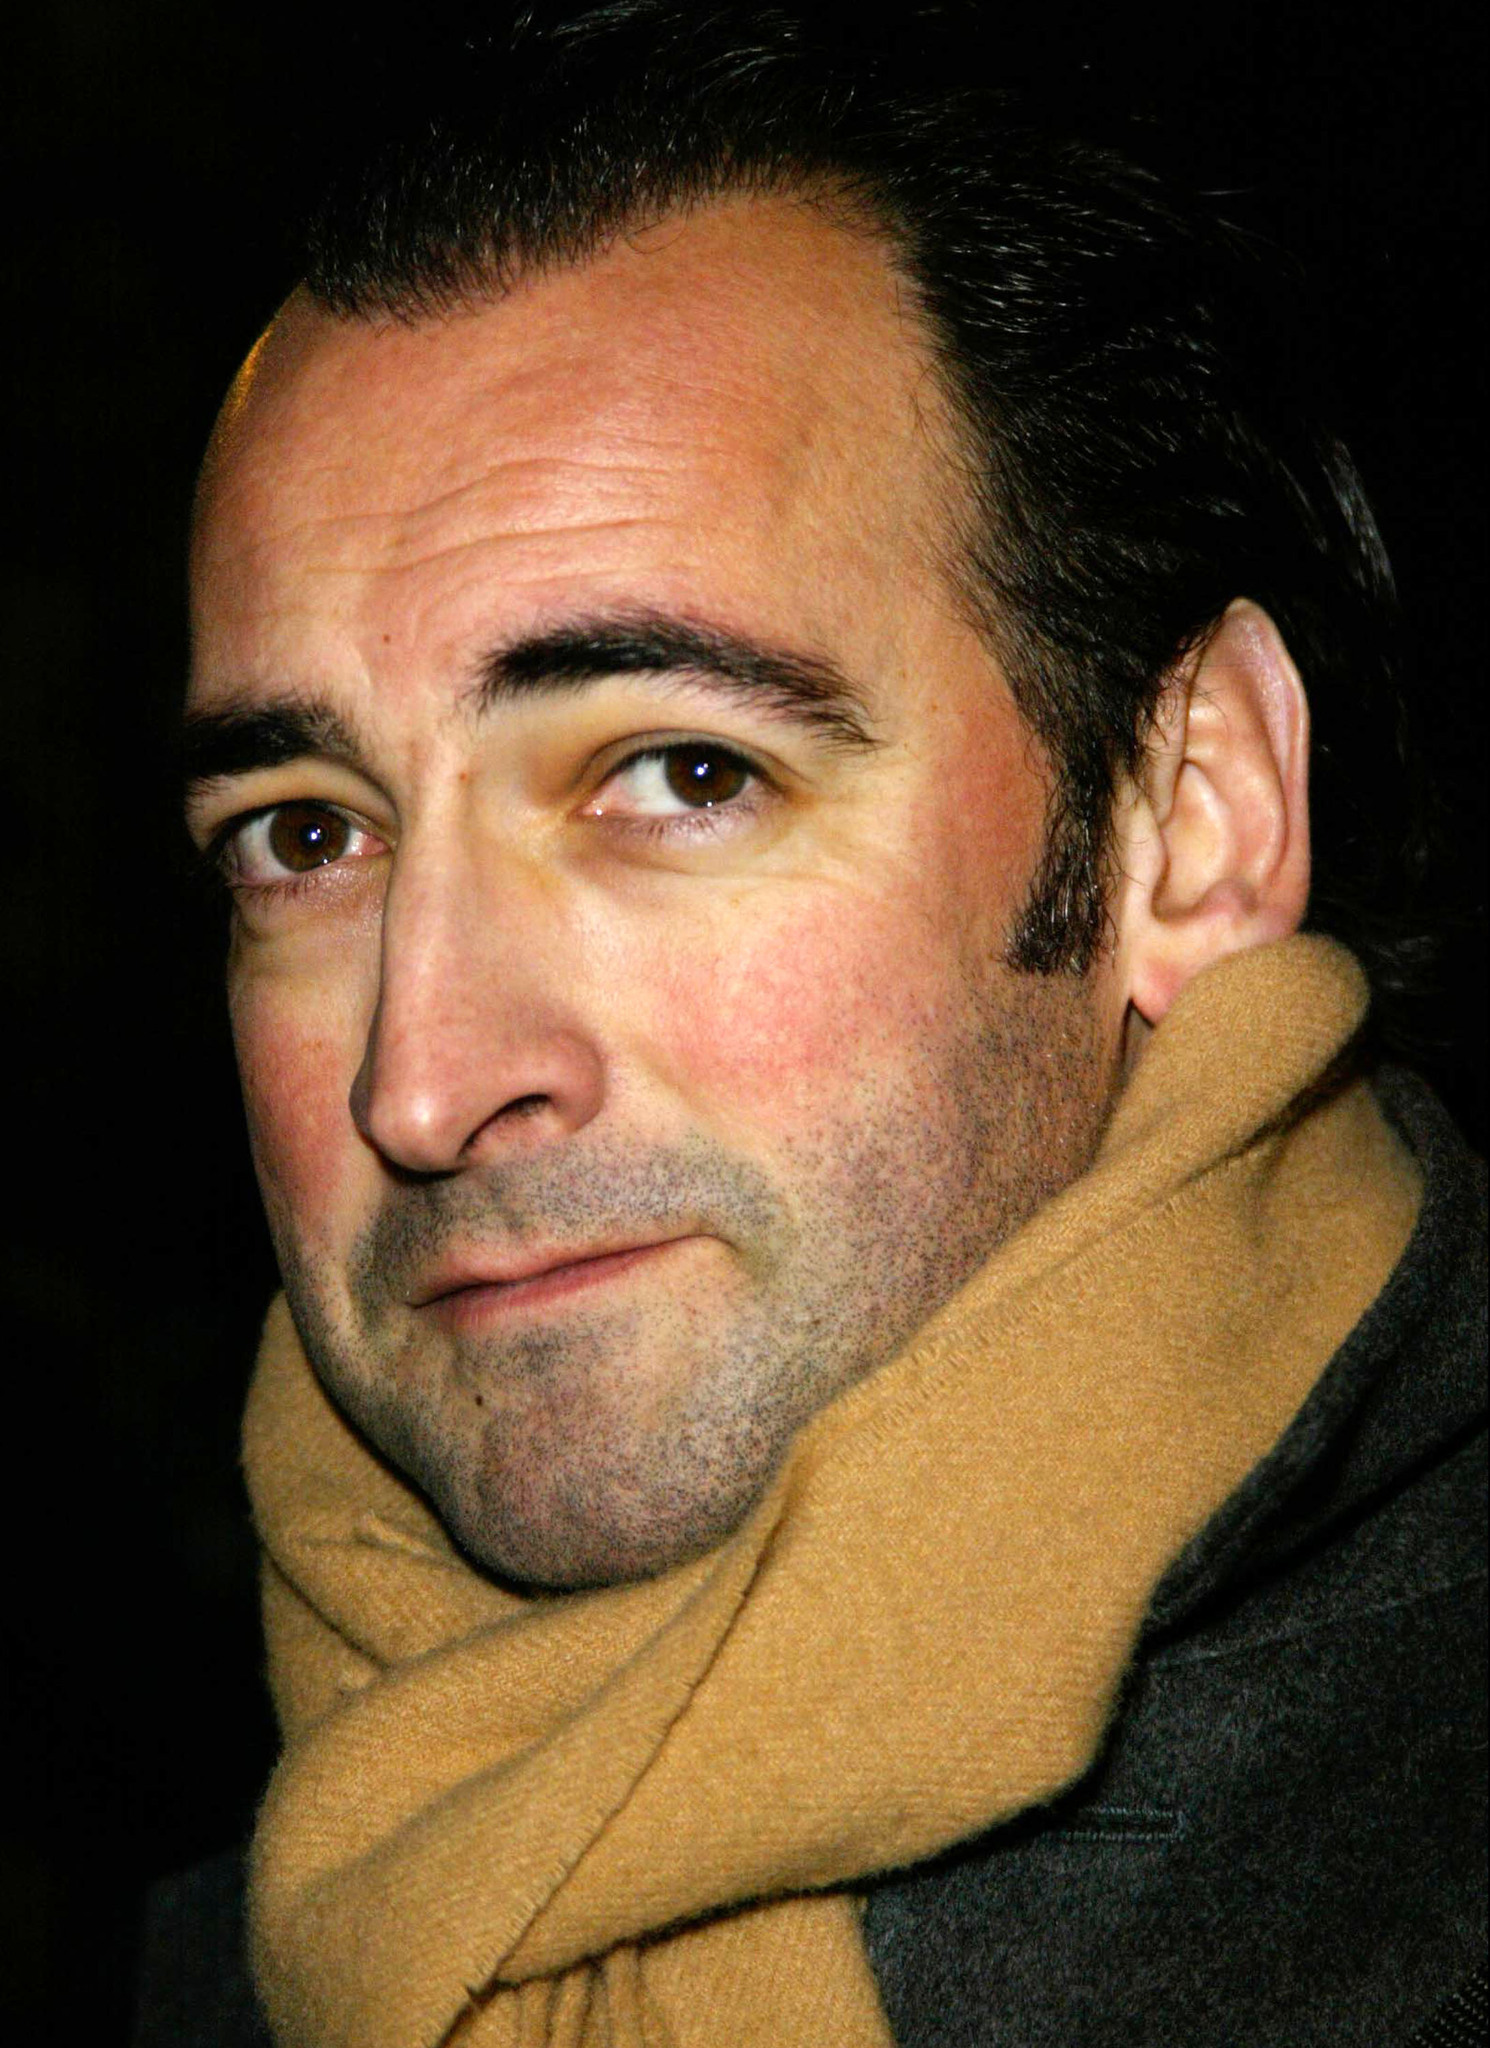 Alistair McGowan's primary photo